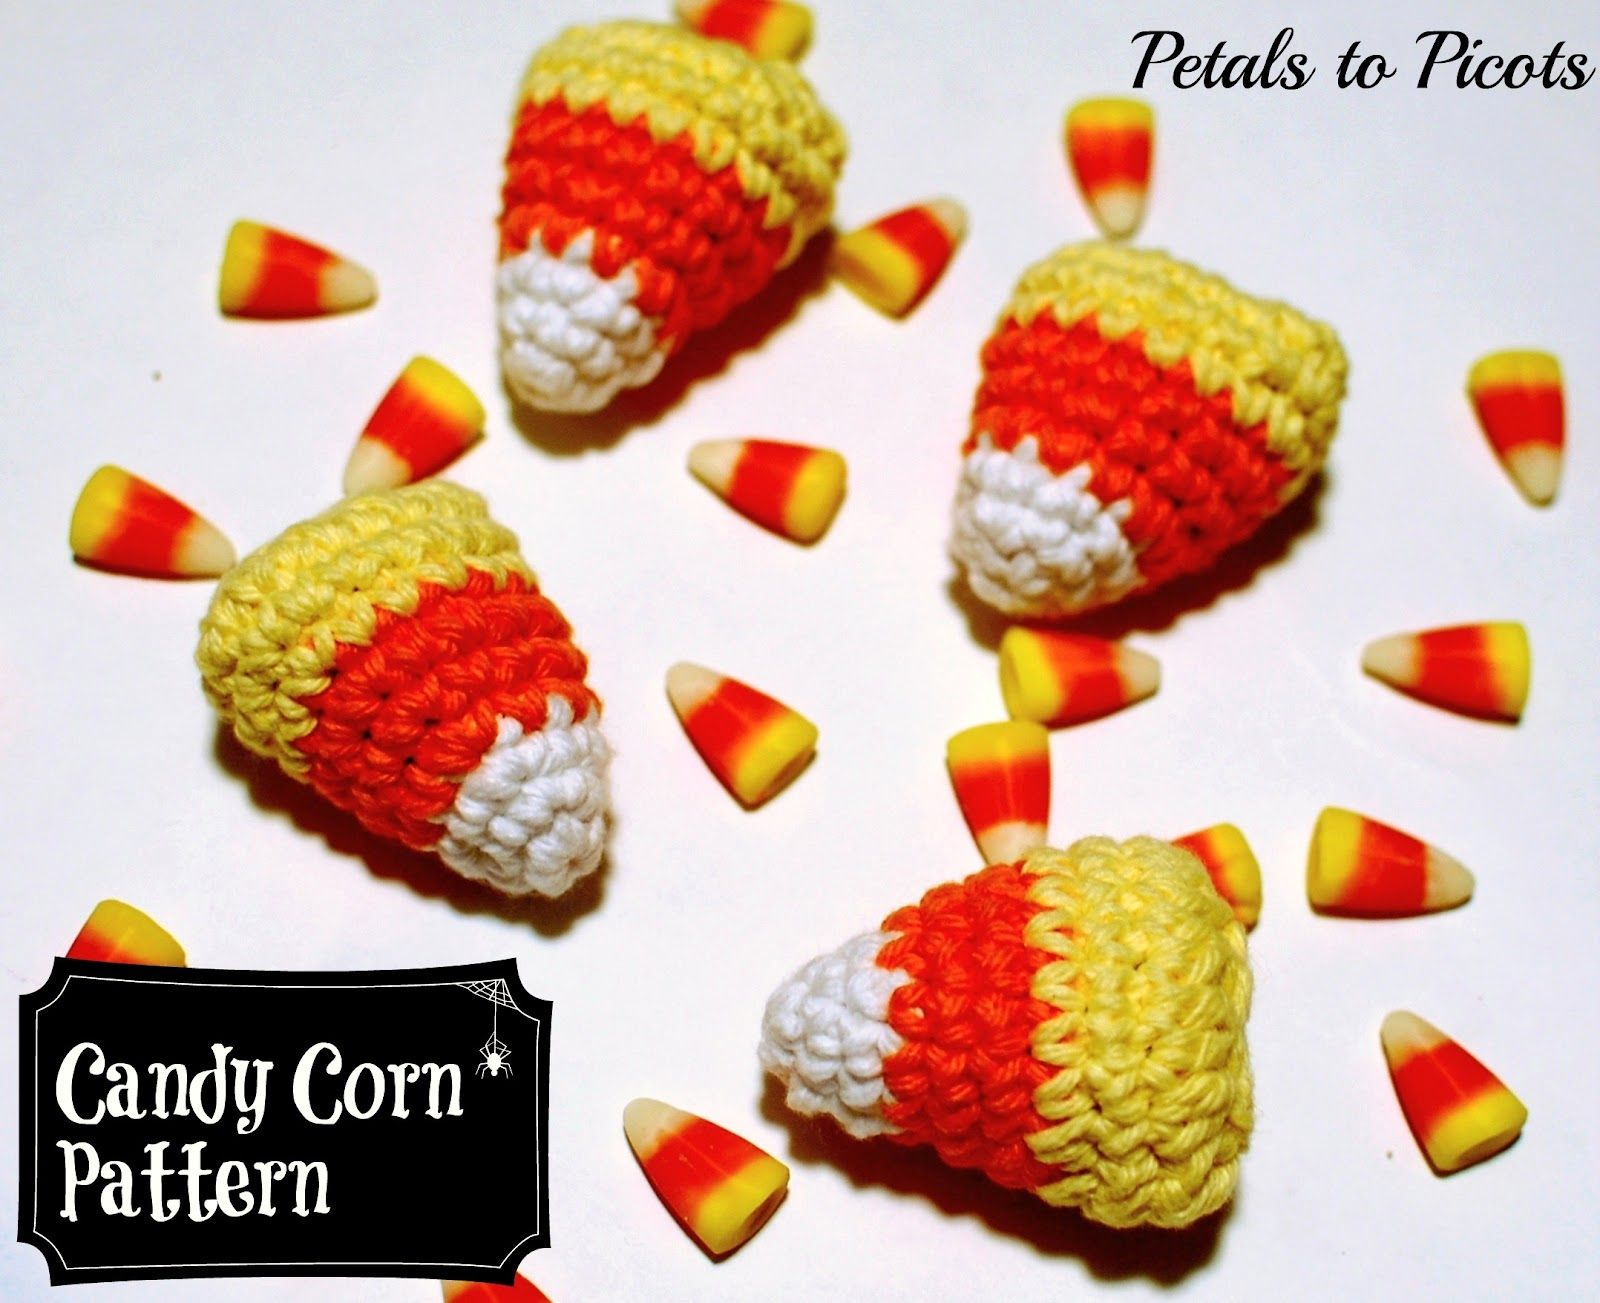 A few of these Crocheted Candy Corns would look really cute hanging from the crochet Halloween Pumpkin Trick or Treat Bag that I just pinned earlier! ¯\_(ツ)_/¯